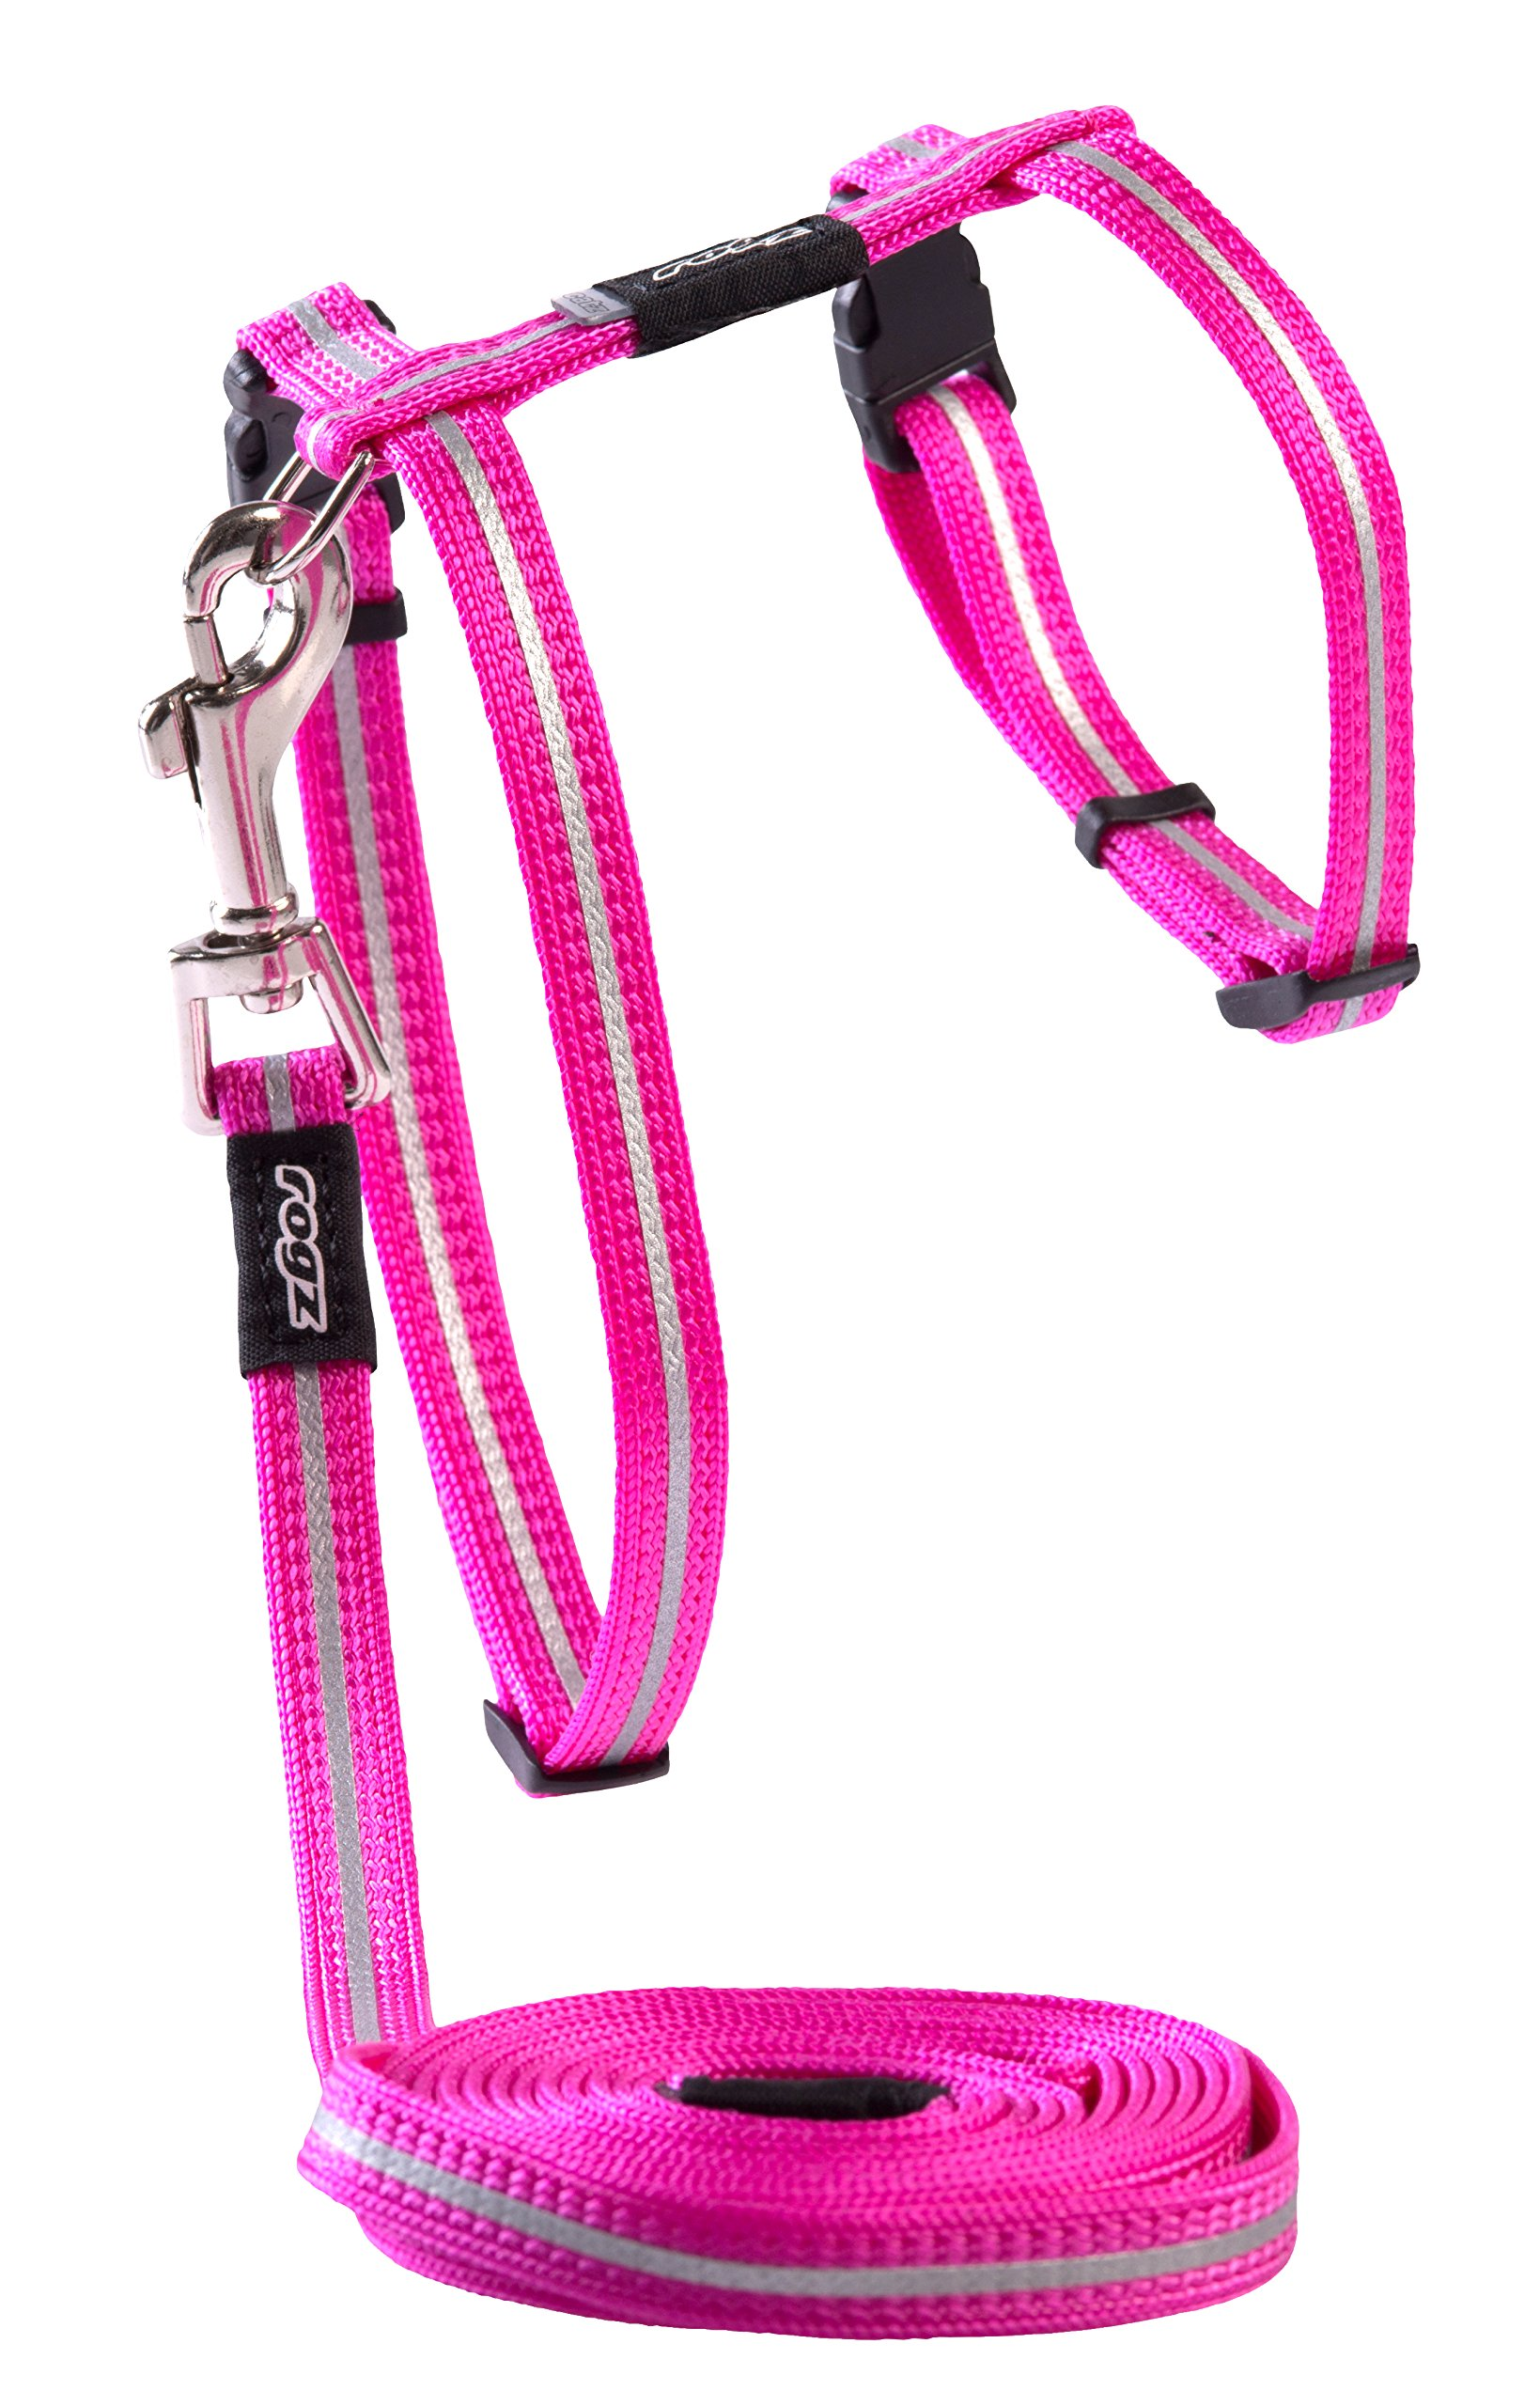 Rogz Reflective Nylon Cat Leash and Harness Combination Set, escape proof for walking and fully adjustable to fit most breeds, Pink